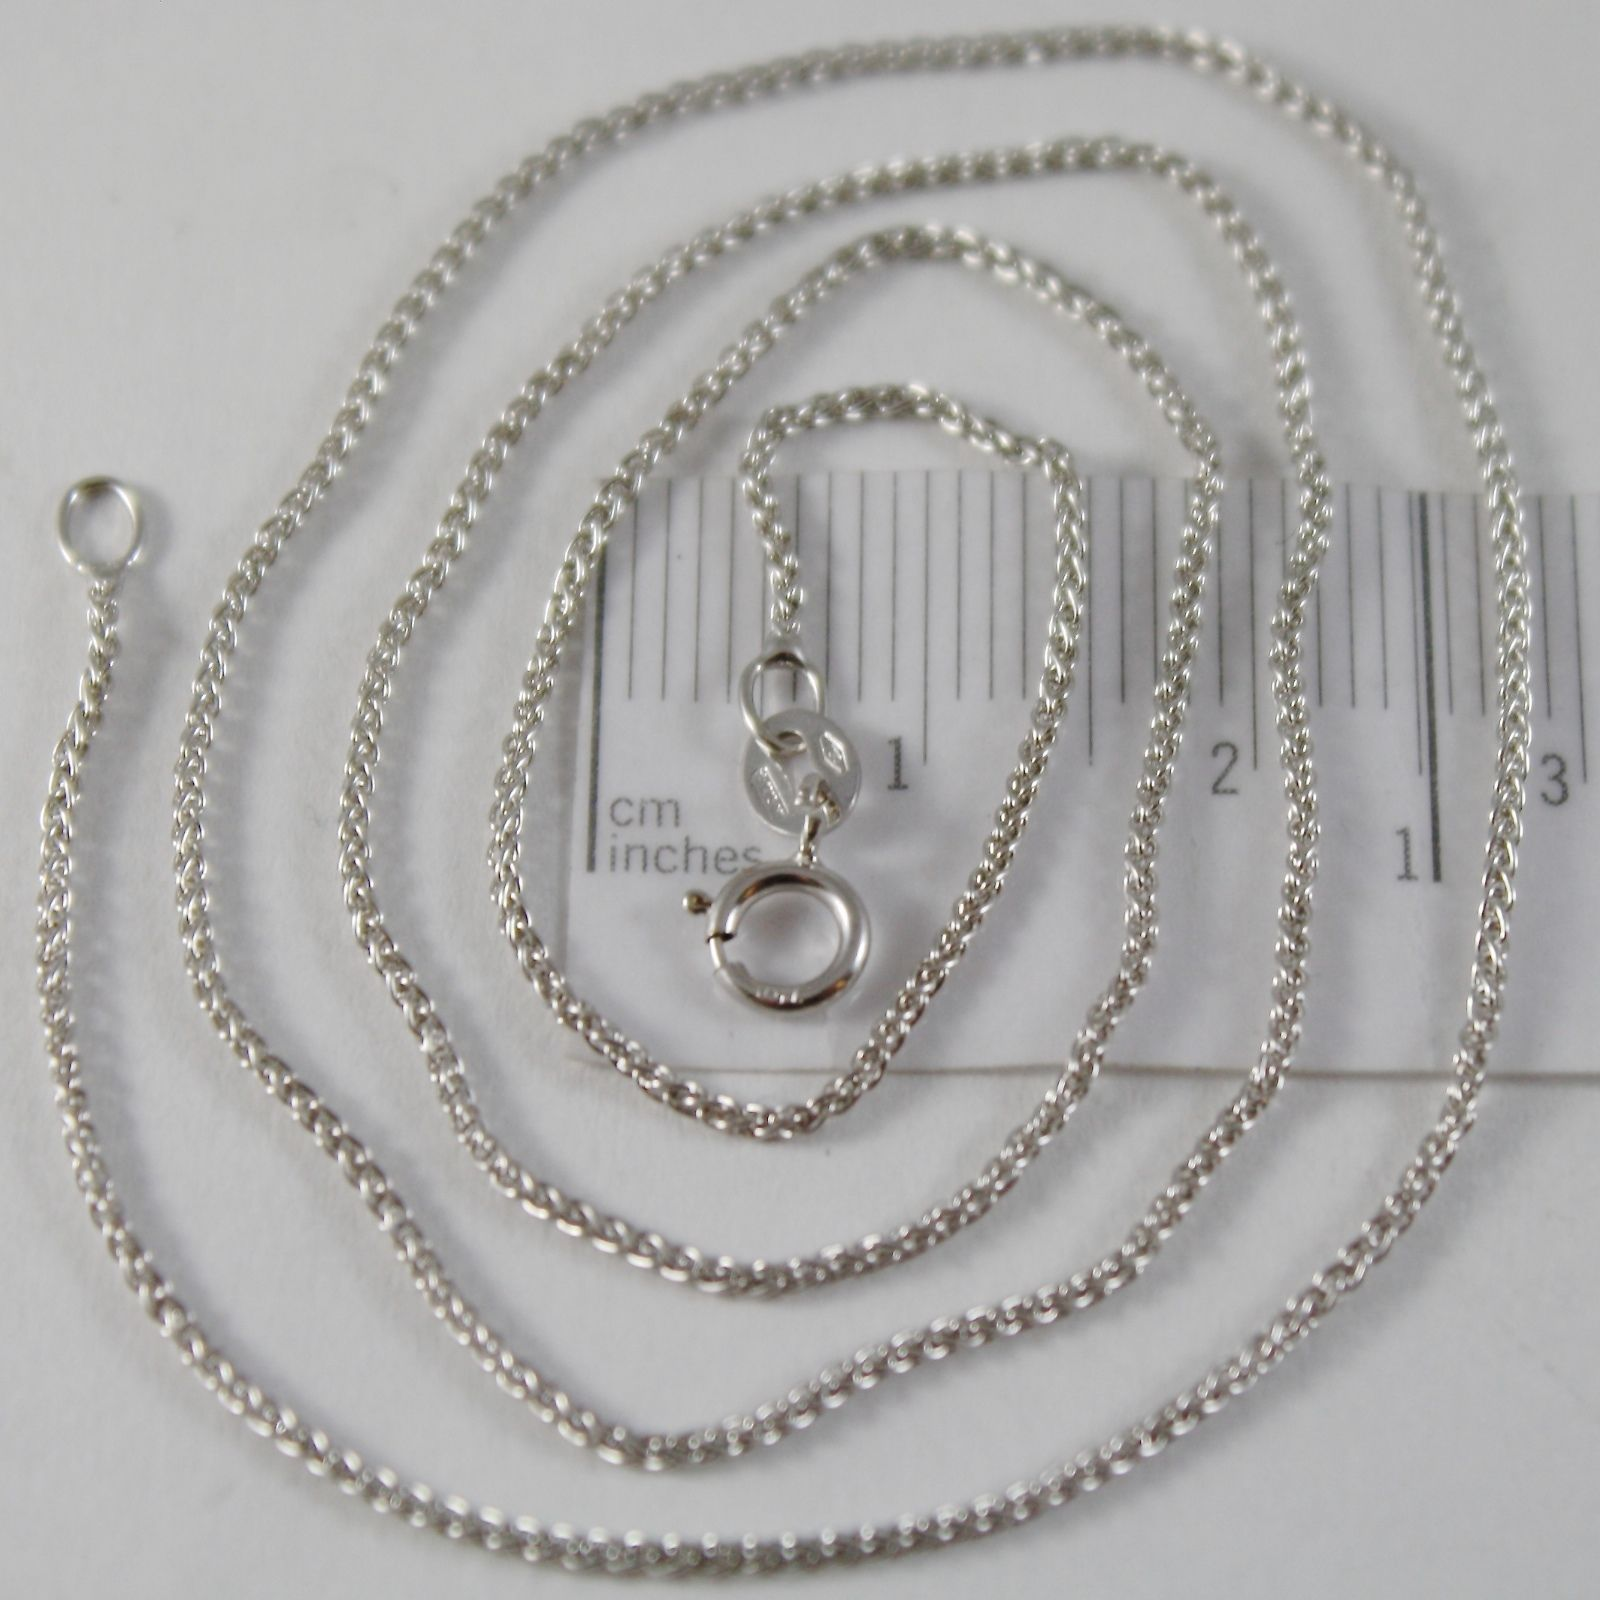 SOLID 18K WHITE GOLD SPIGA WHEAT EAR CHAIN 24 INCHES, 1.2 MM, MADE IN ITALY